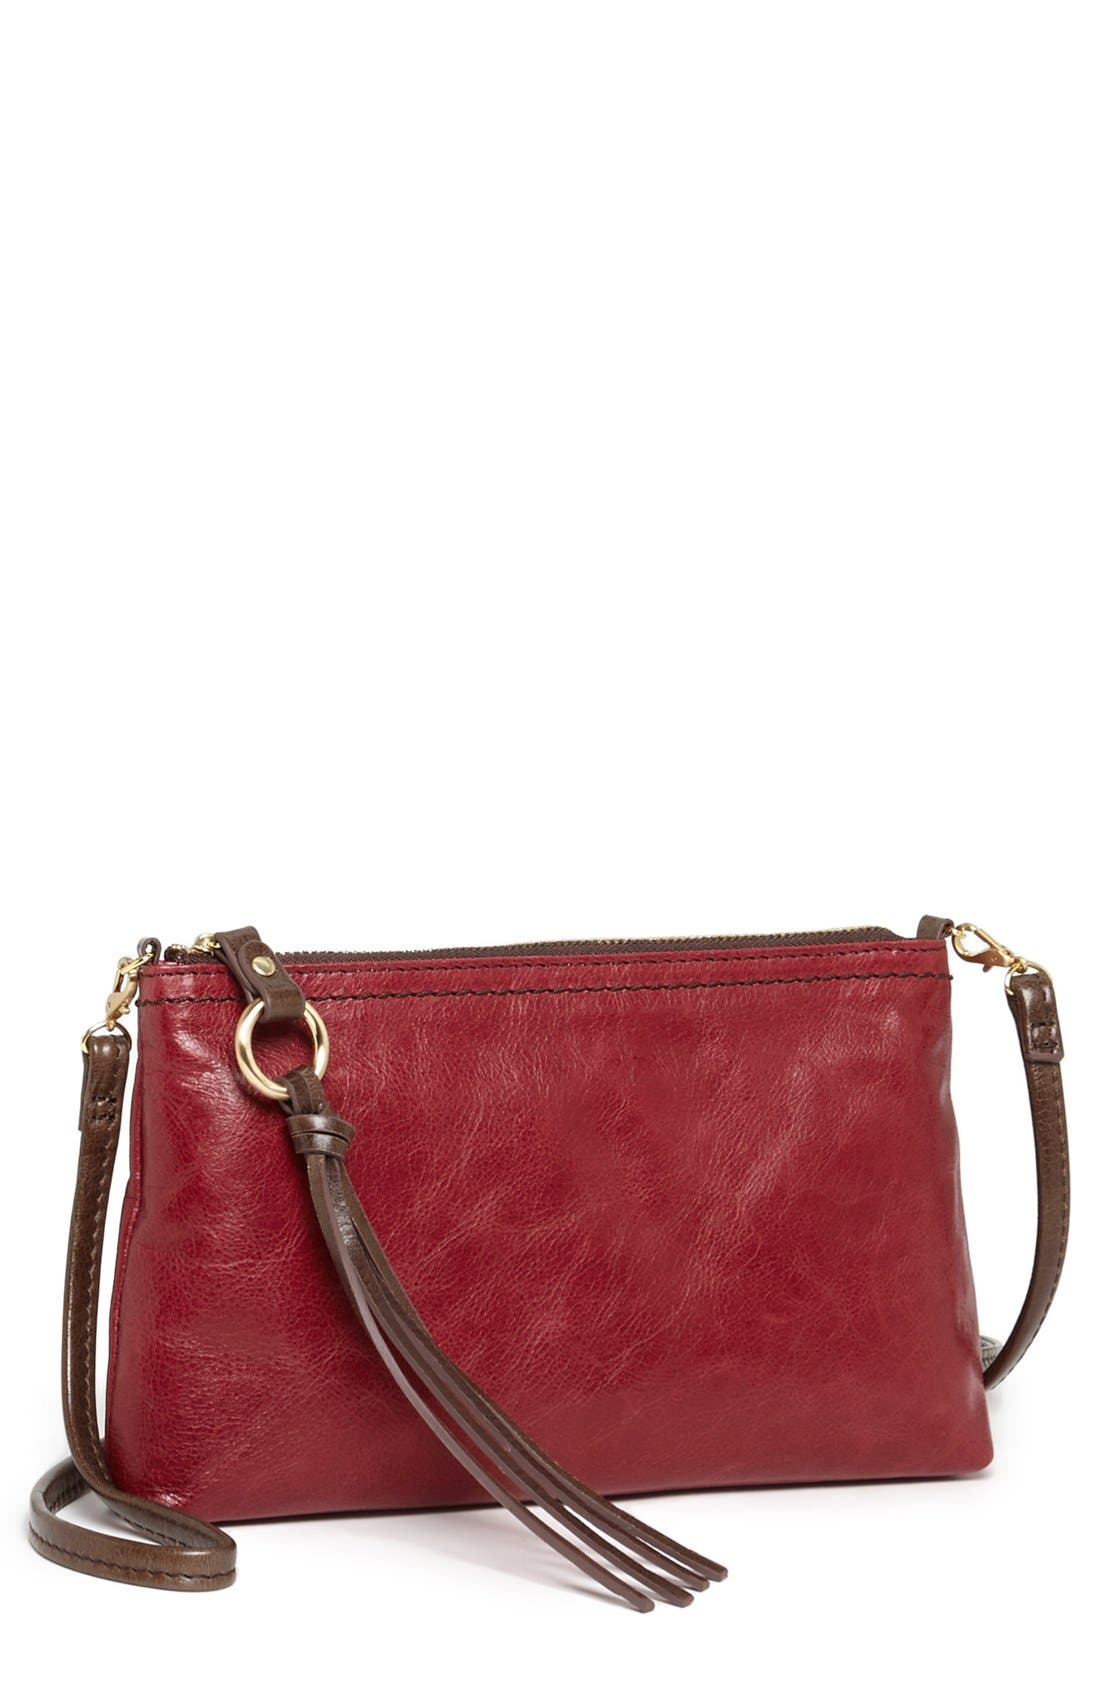 'Darcy' Leather Crossbody Bag,                             Main thumbnail 25, color,